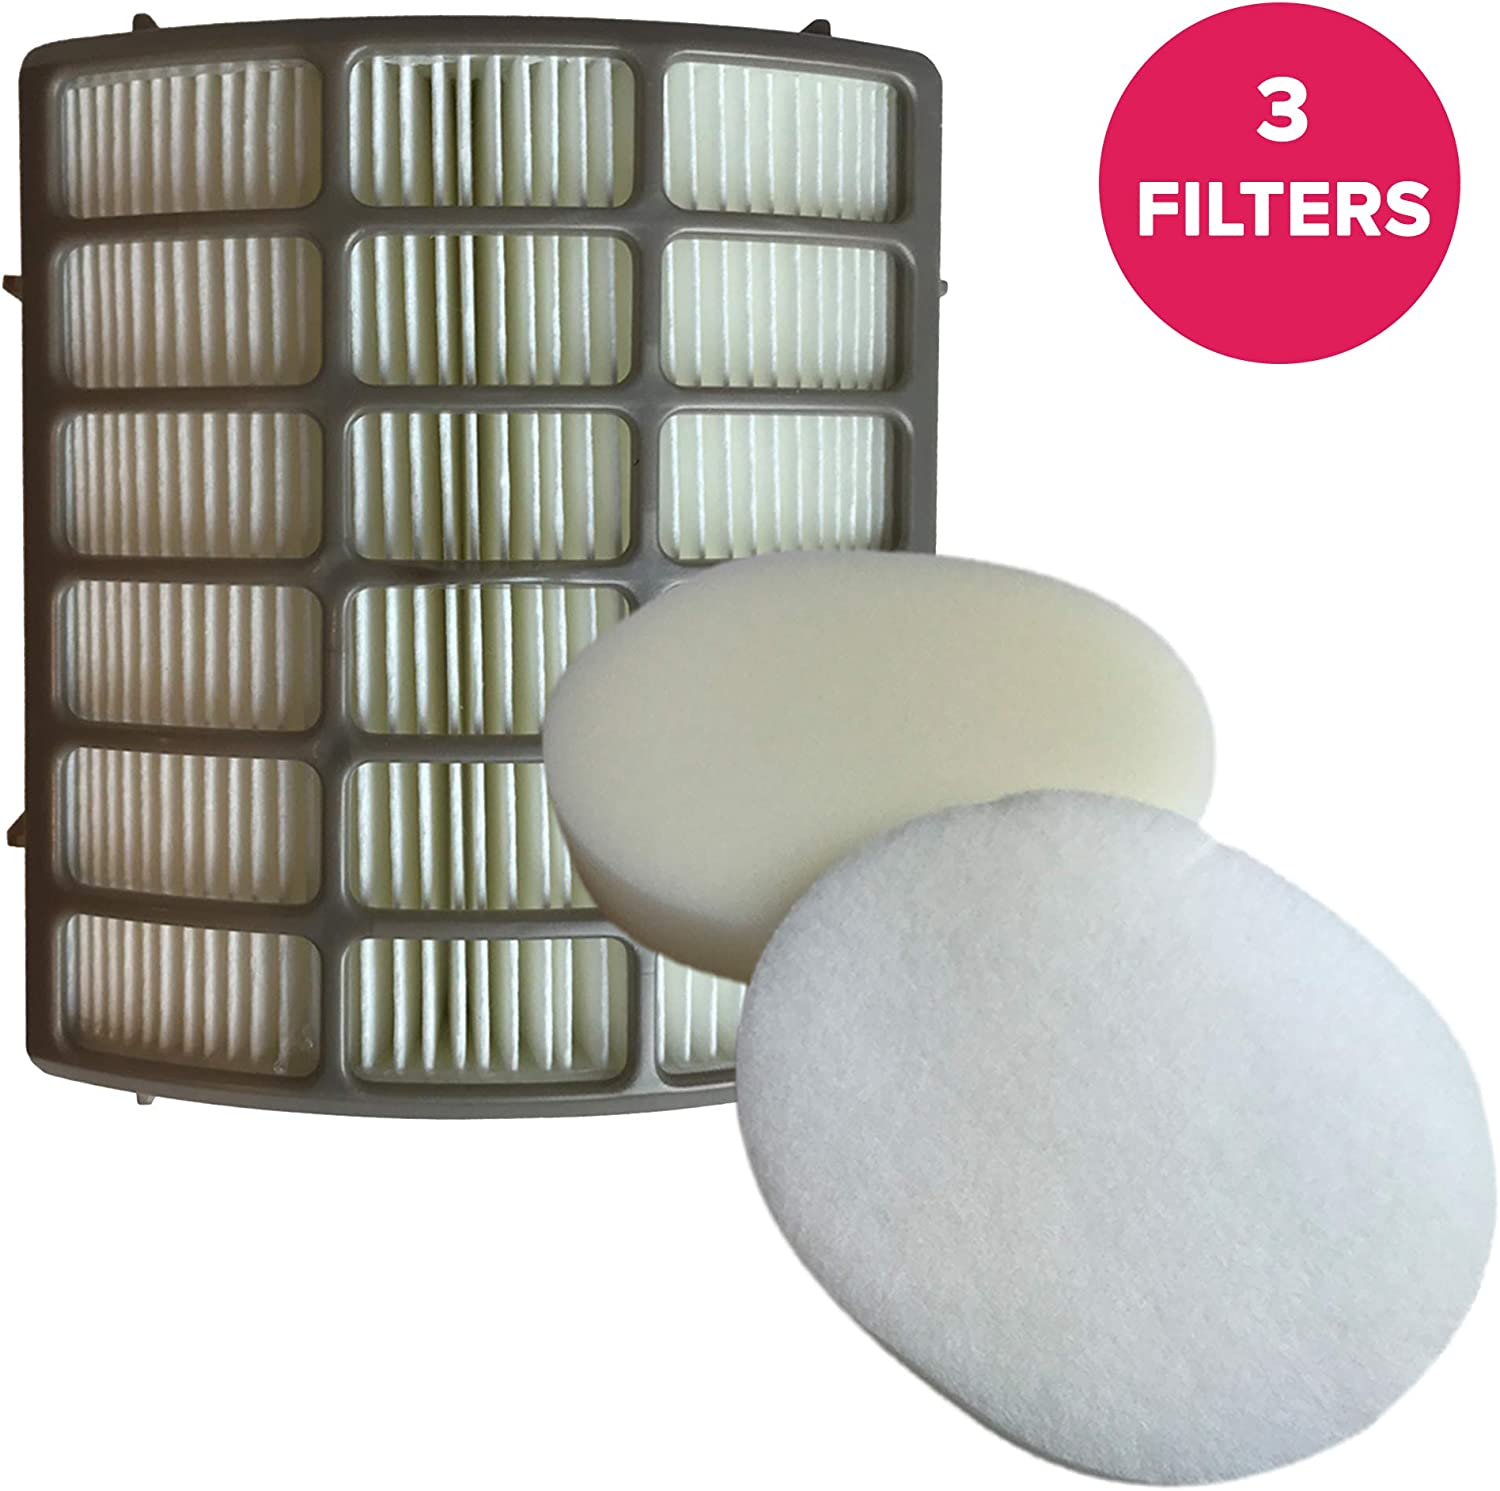 Crucial Vacuum Replacement Vacuum Filter Compatible with Shark HEPA Style Filter Part # XFF80, Foam & Felt Filter Part # XFF80NZ - Fits Shark XHF80, NV-80, UV420, UV440 ? Bulk (3 Filters)